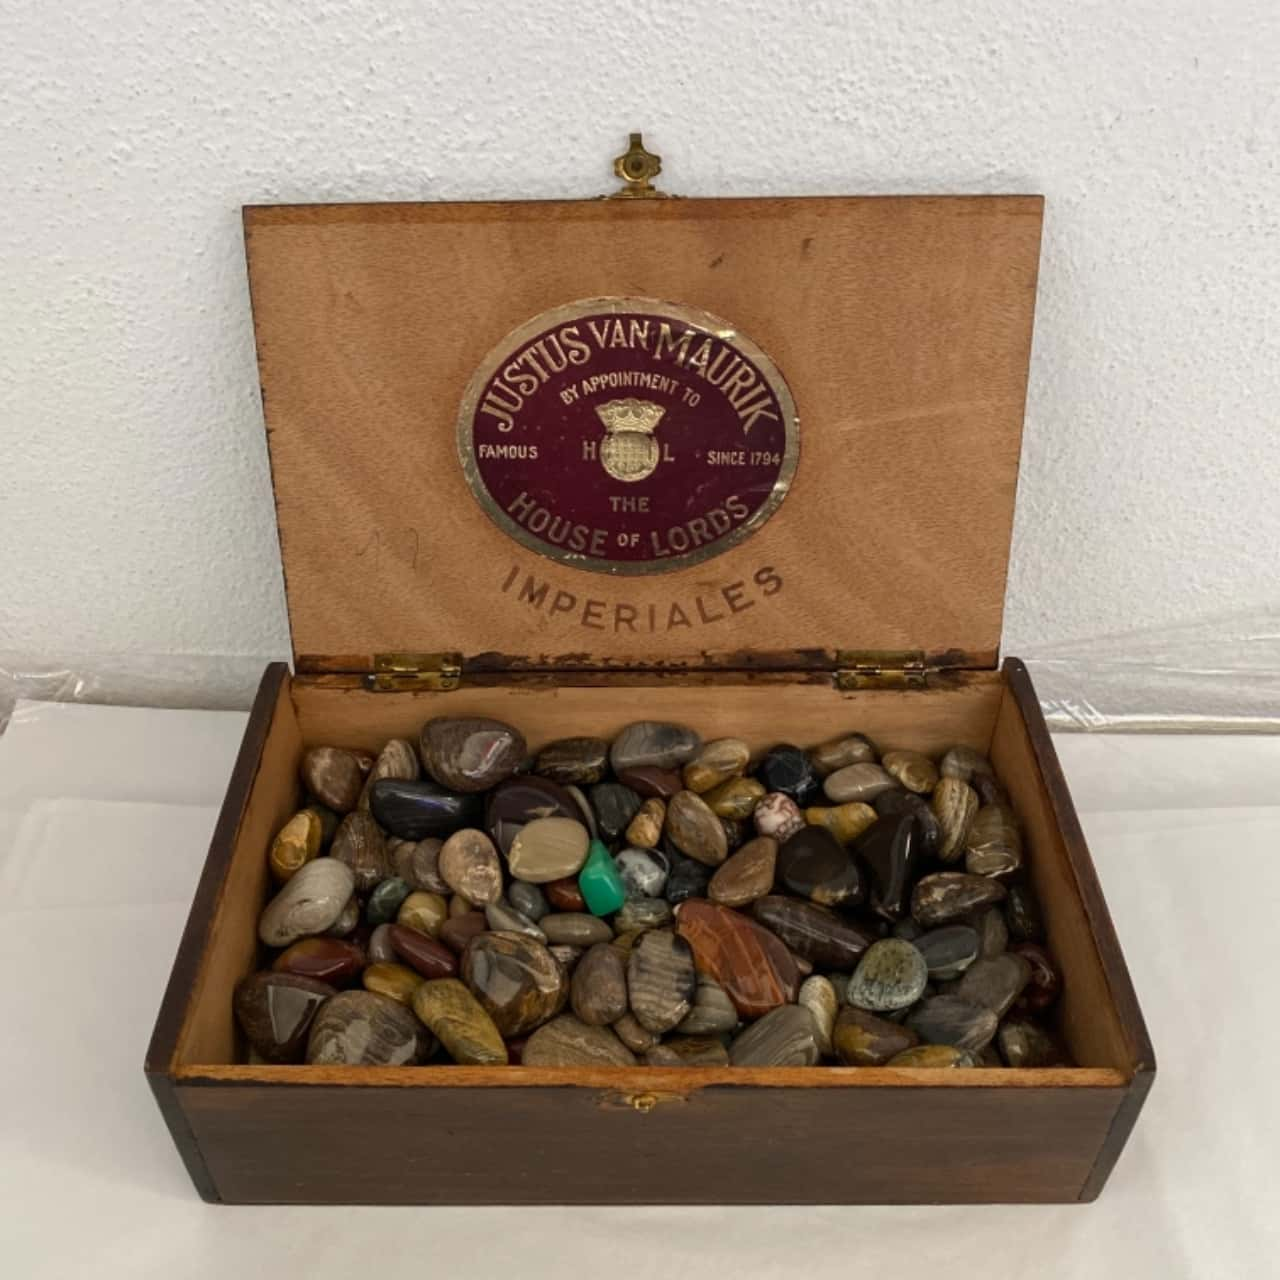 Vintage Cigar box with variety of stones inside